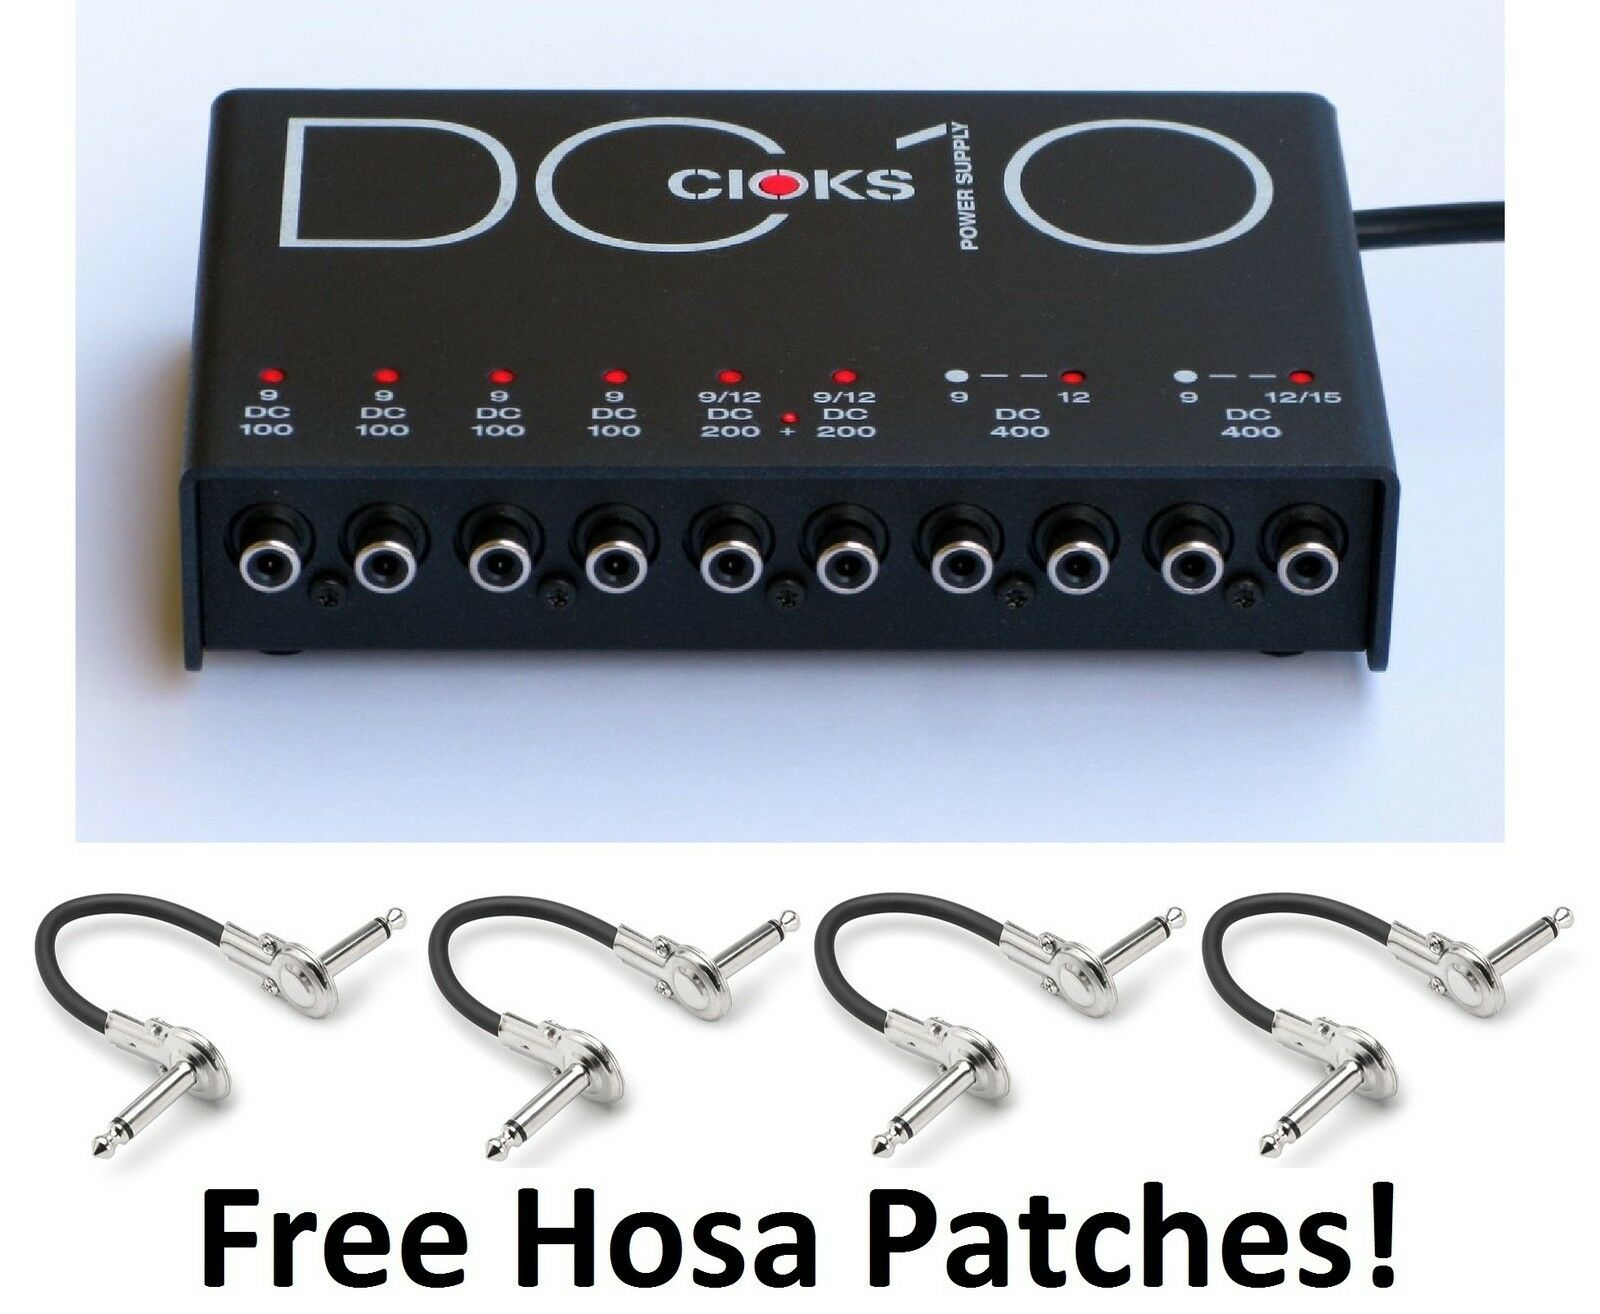 New CIOKS DC10 Guitar Pedal Power Supply  Free Hosa Patches  DC 10